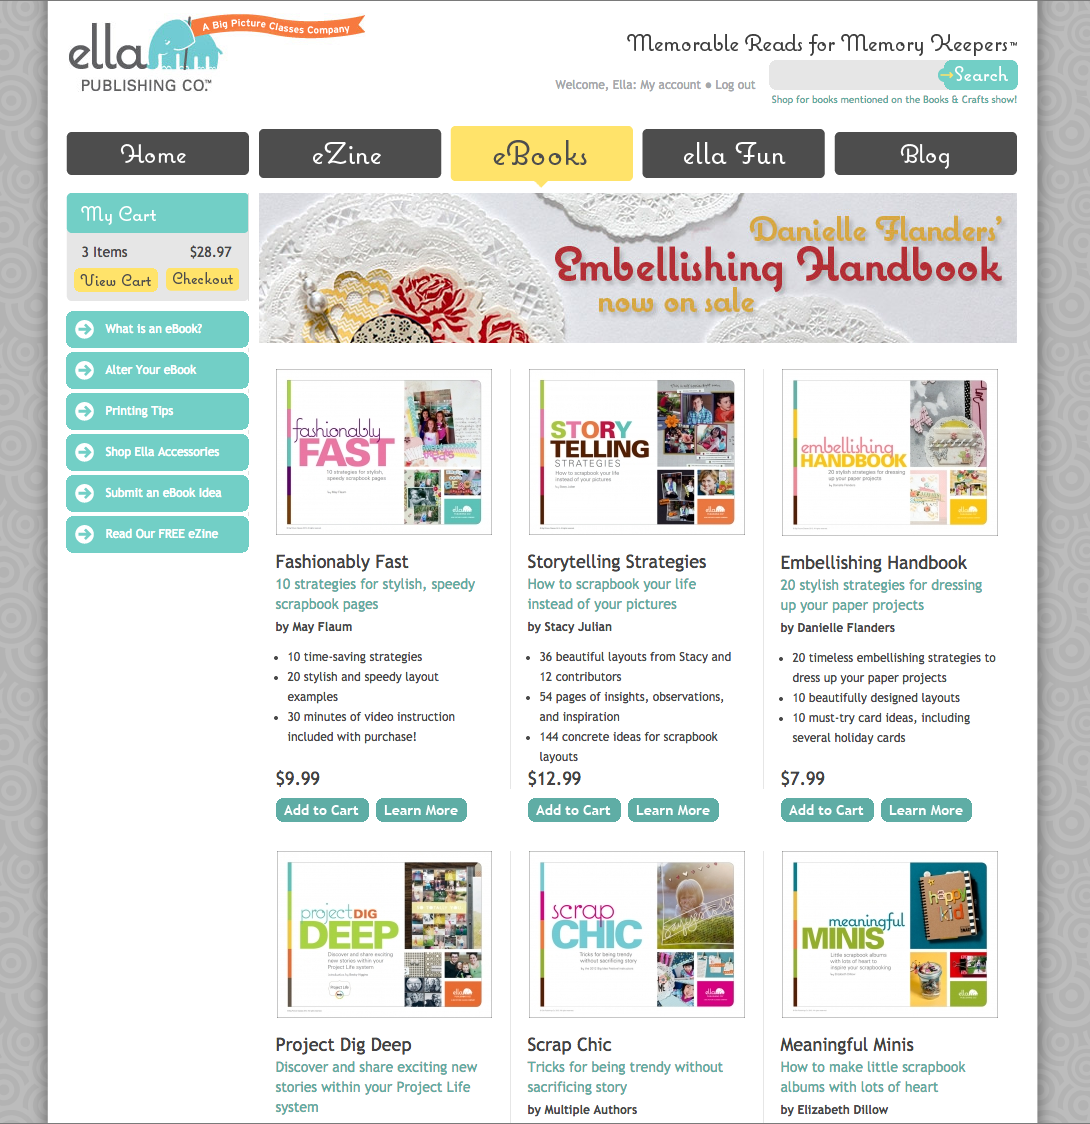 A little peek at the bygone Ella Publishing Co. website that dominated 3 years of my life...